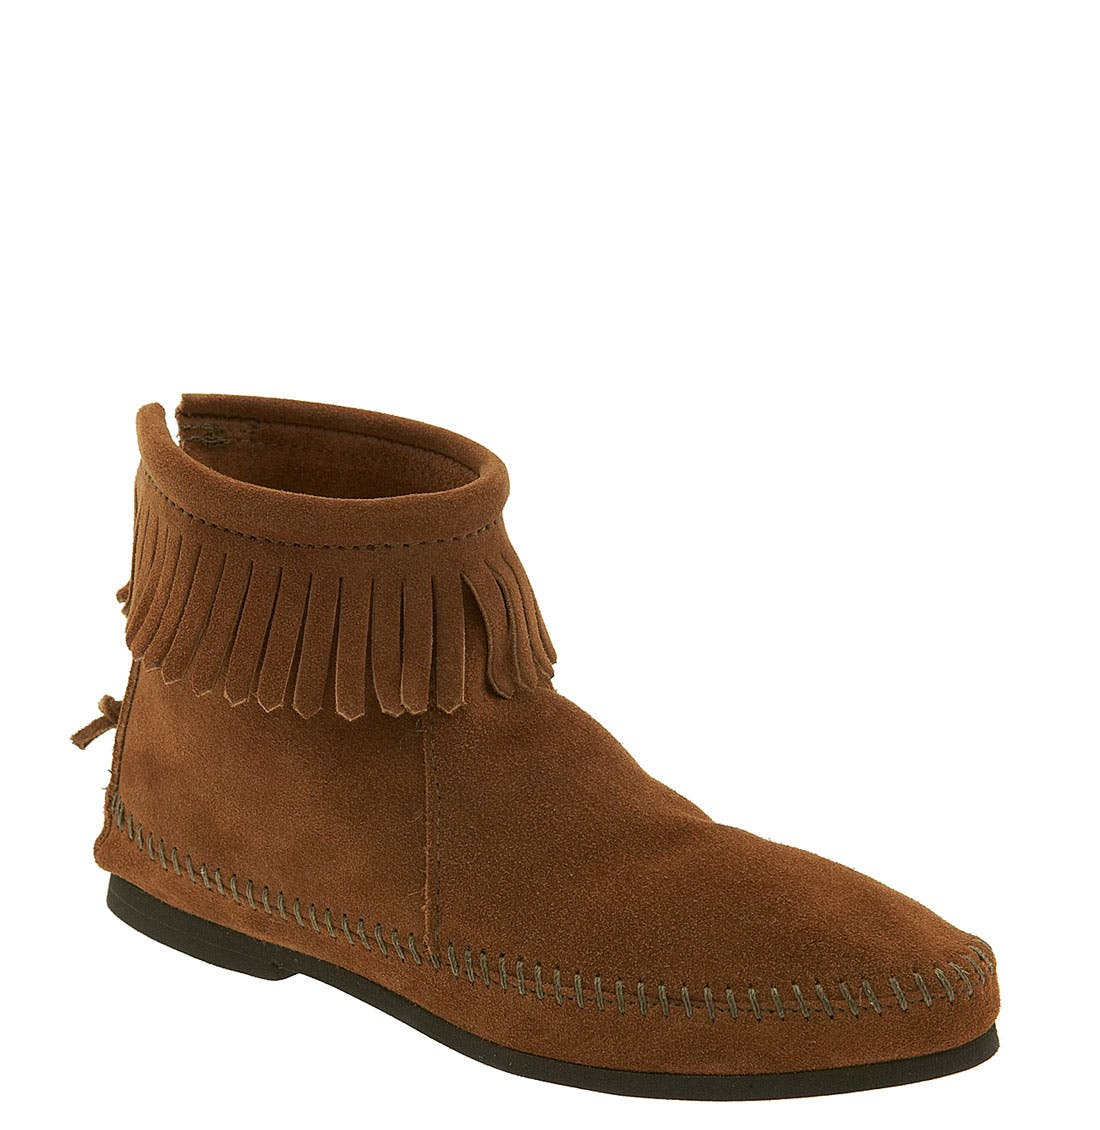 Main Image - Minnetonka Fringed Short Boot